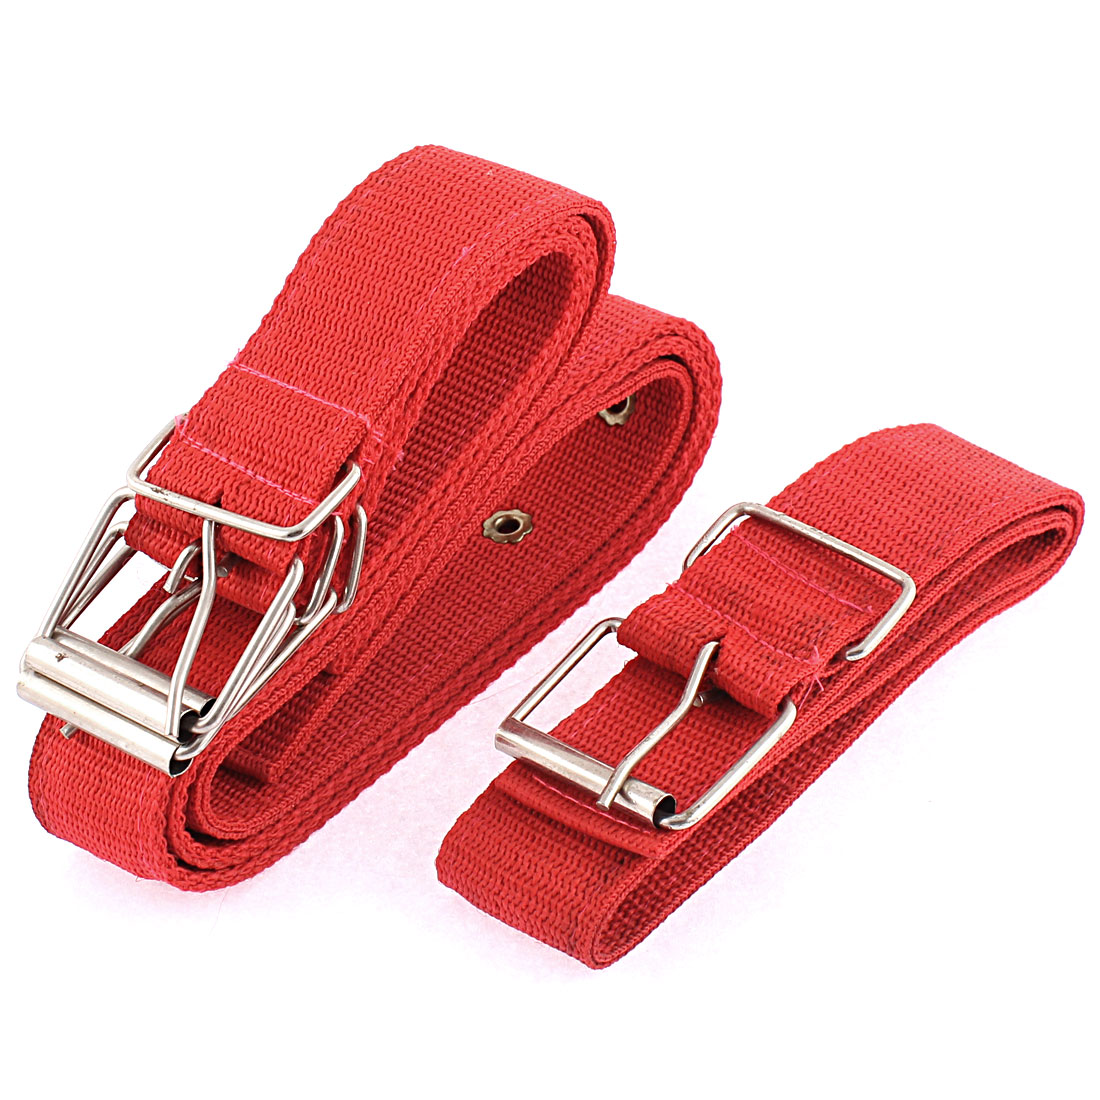 Pet Dog Safety Nylon Single Pin Buckle Lead Harness Belt Collar Red 4pcs